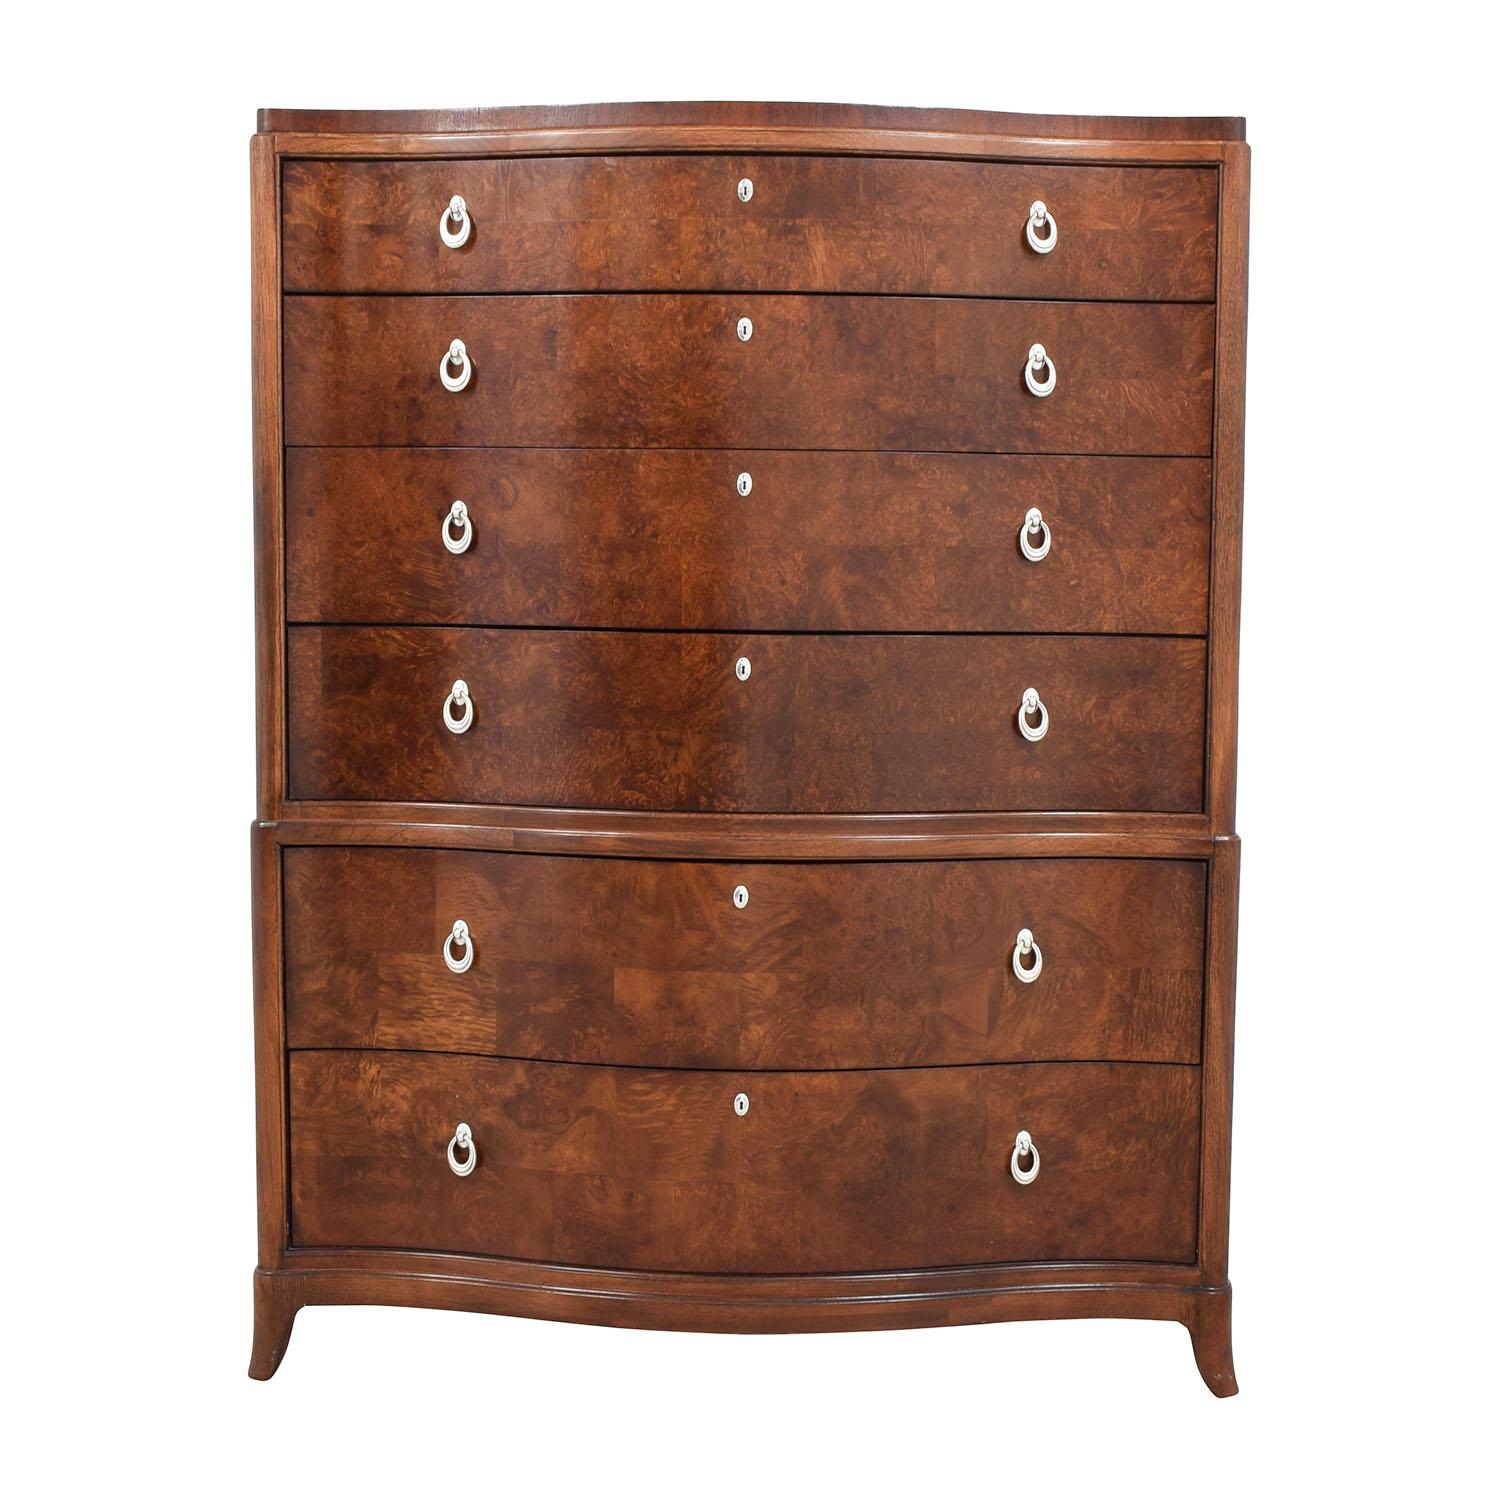 Thomasville Bogart Collection Six Drawer Tall Dresser Dimensions